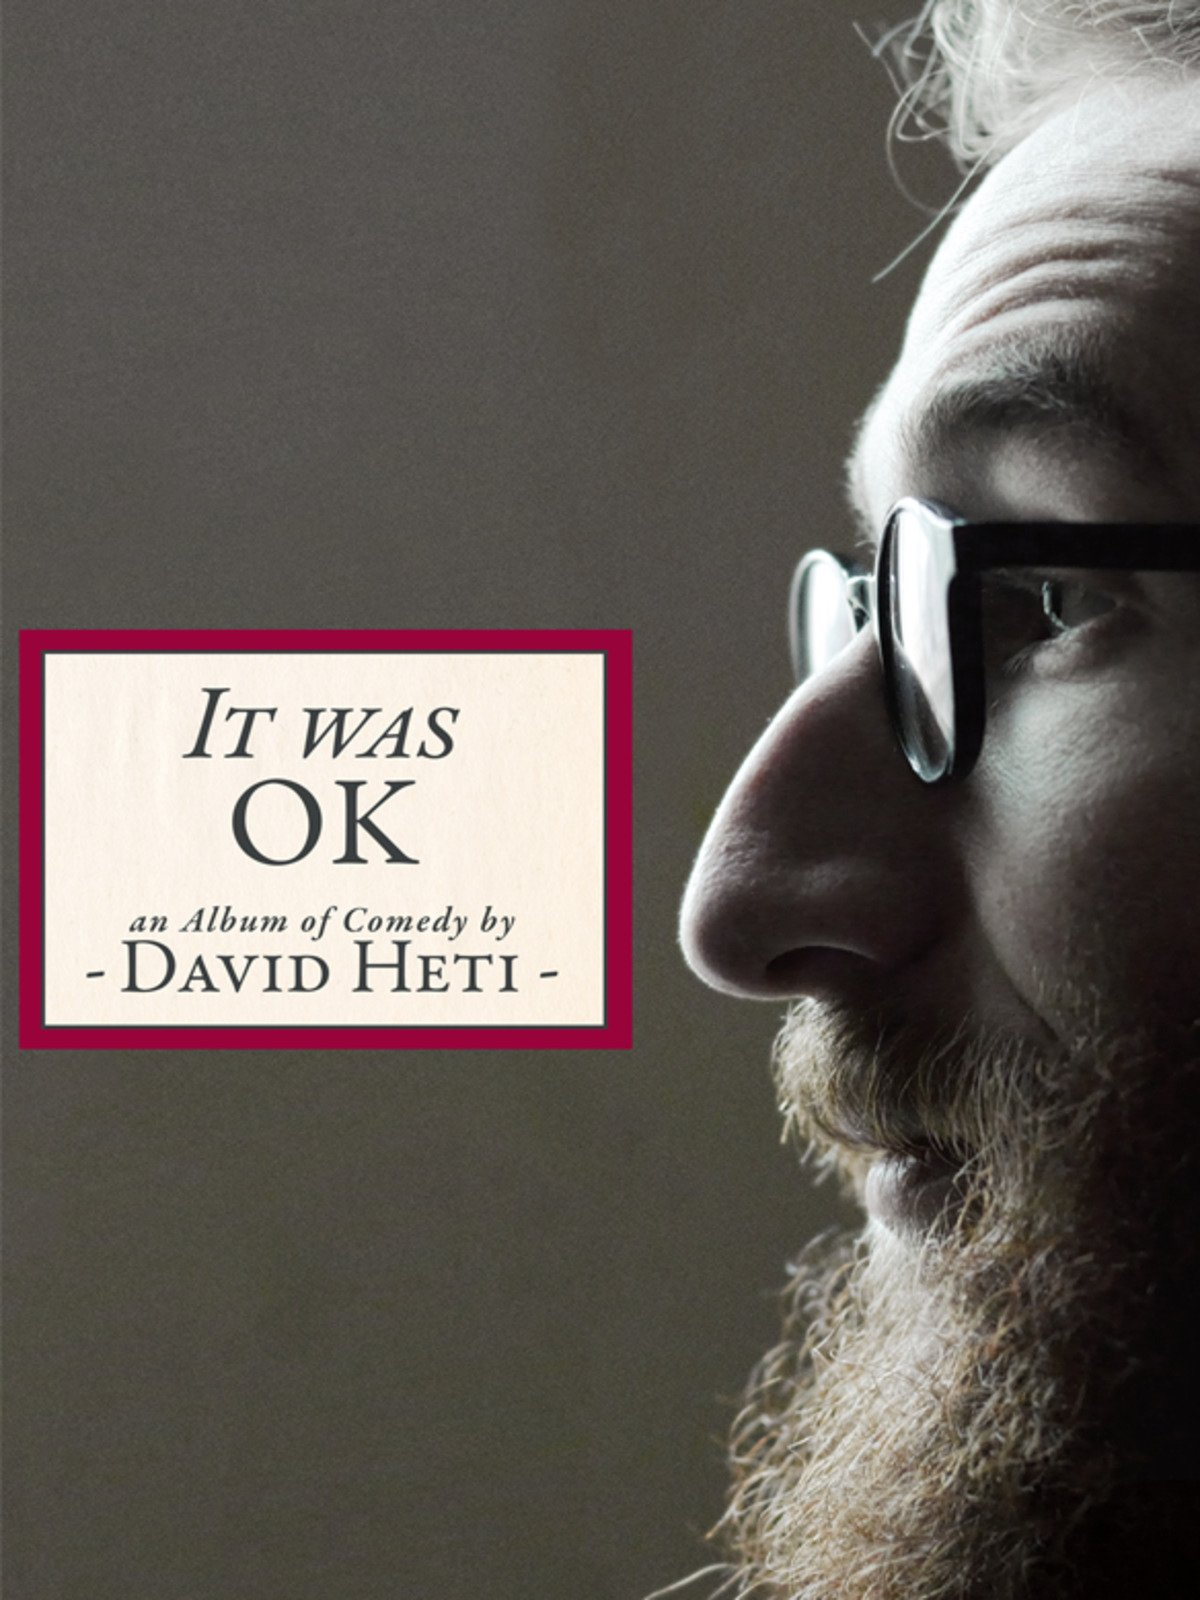 David Heti: It Was Ok, An Album of Comedy by David Heti